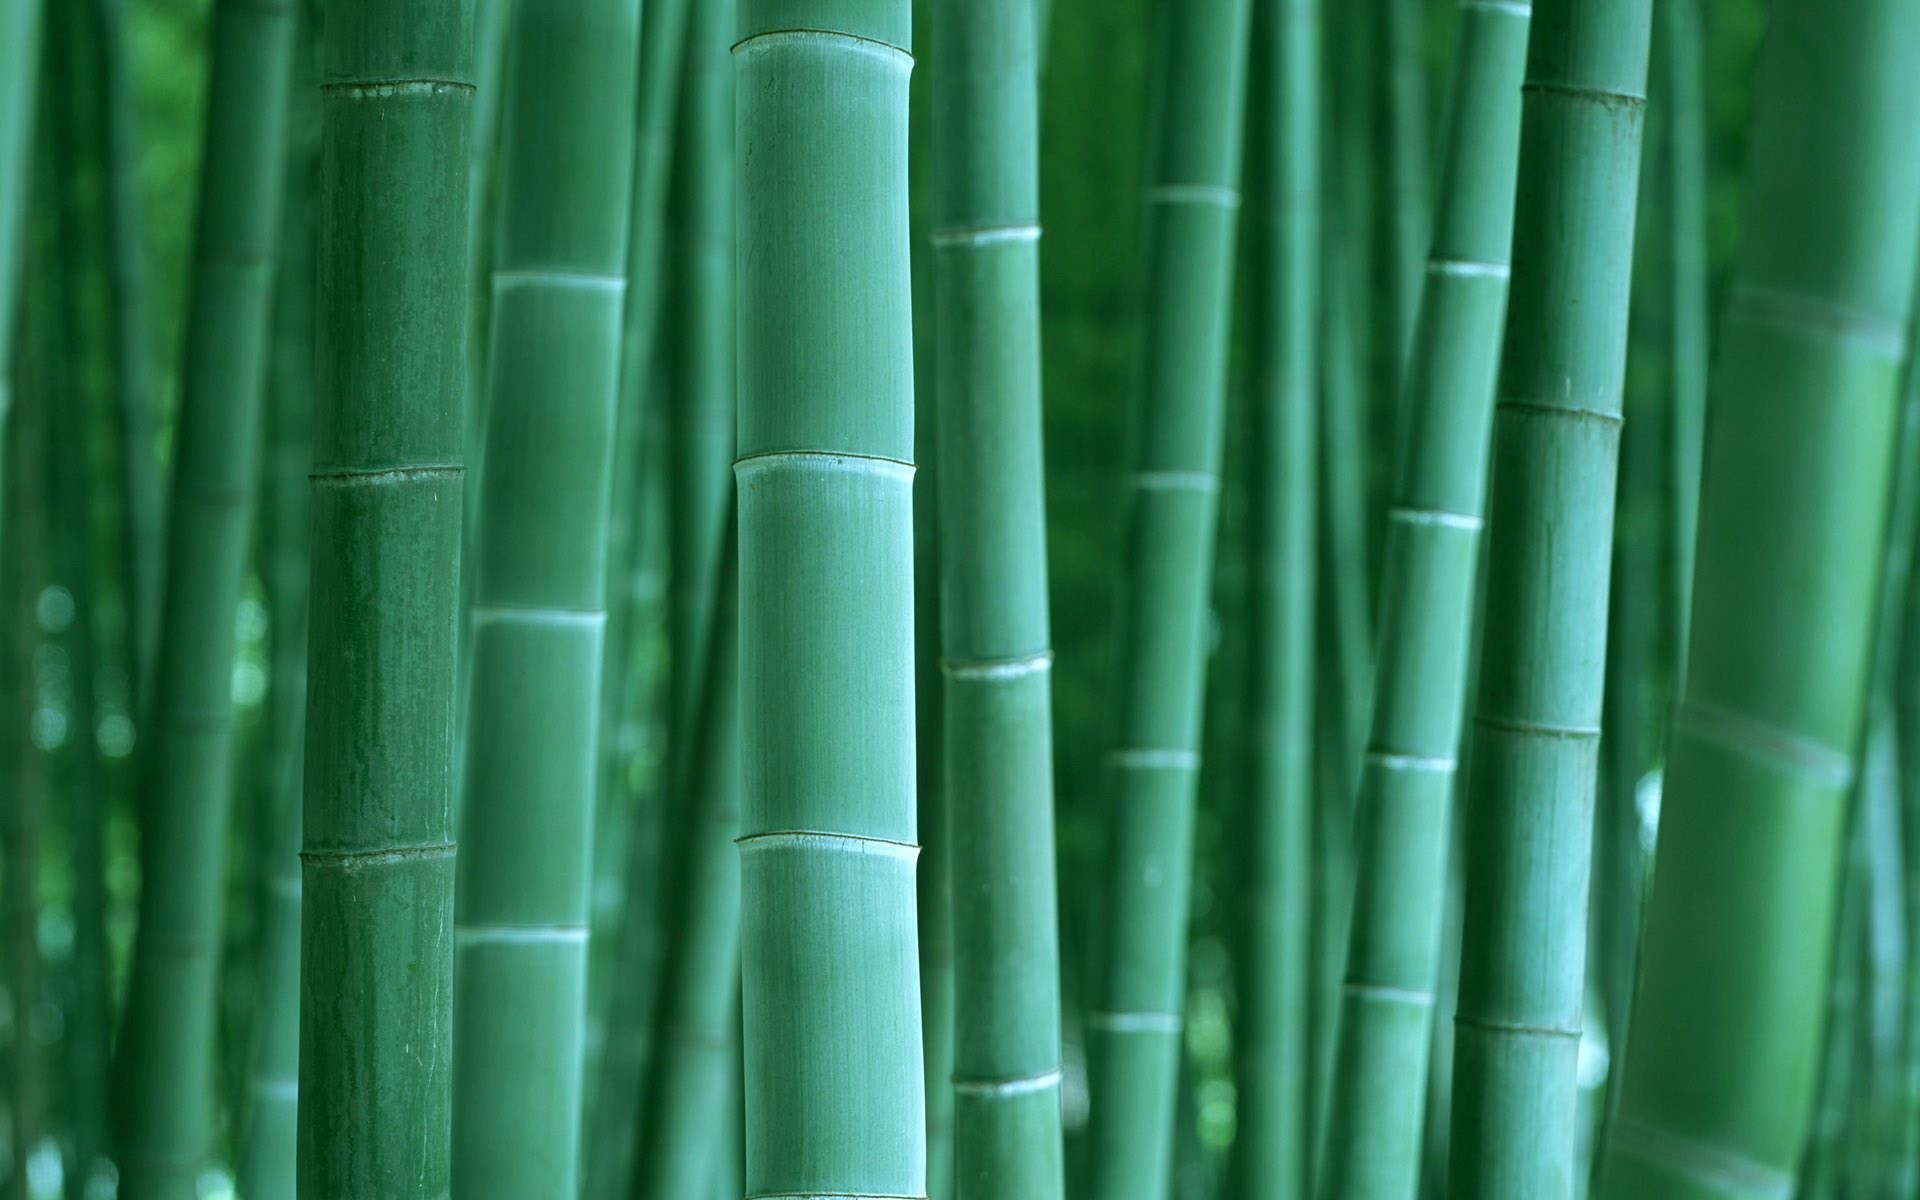 1920x1200 Bamboo Desktop Wallpaper 1947